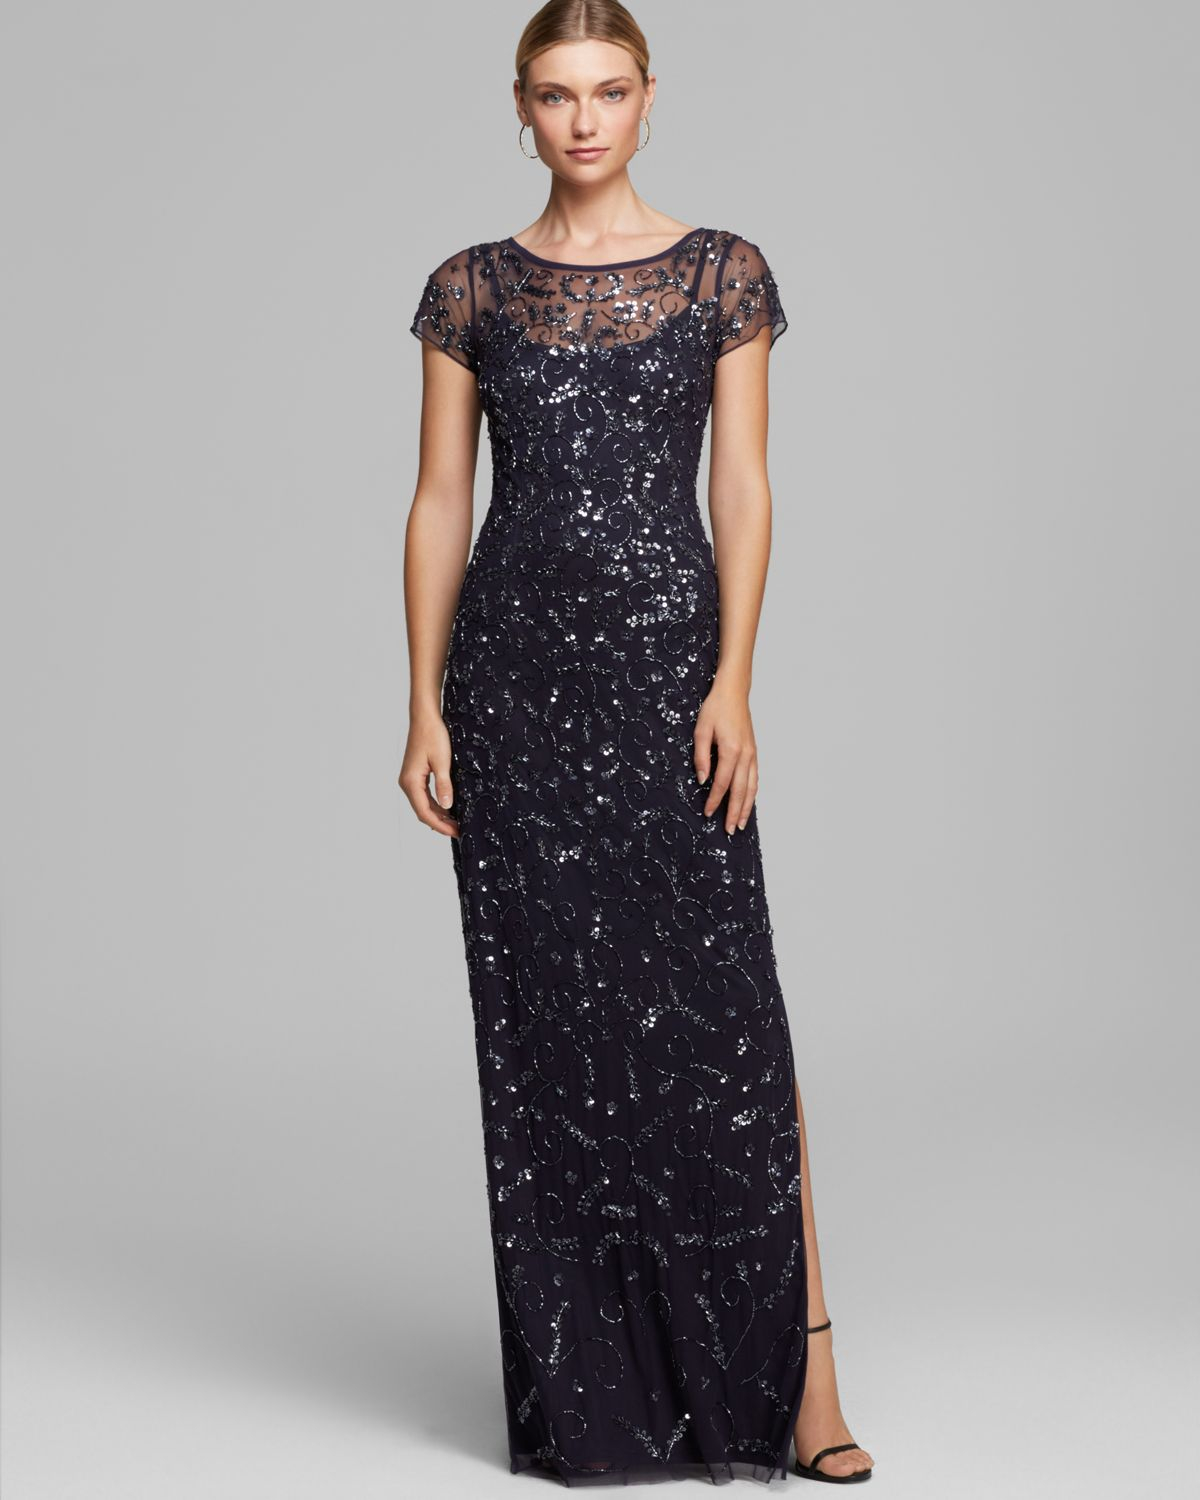 Aidan mattox Gown - Cap Sleeve Beaded in Blue | Lyst